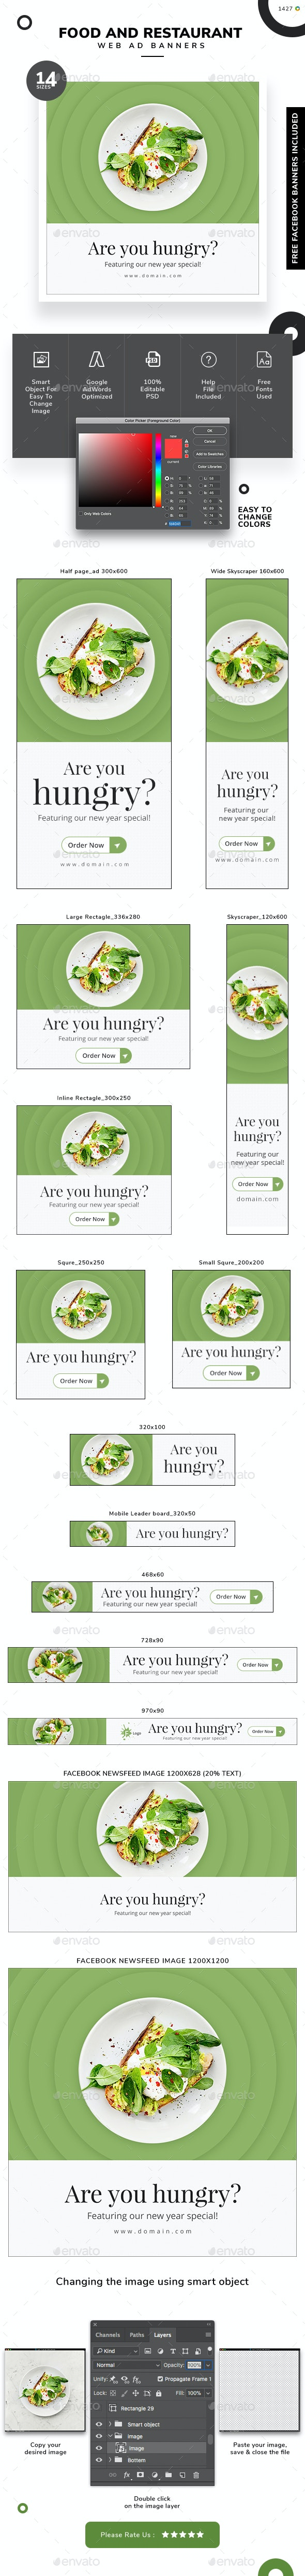 Food and Restaurant Banner Set - Banners & Ads Web Elements